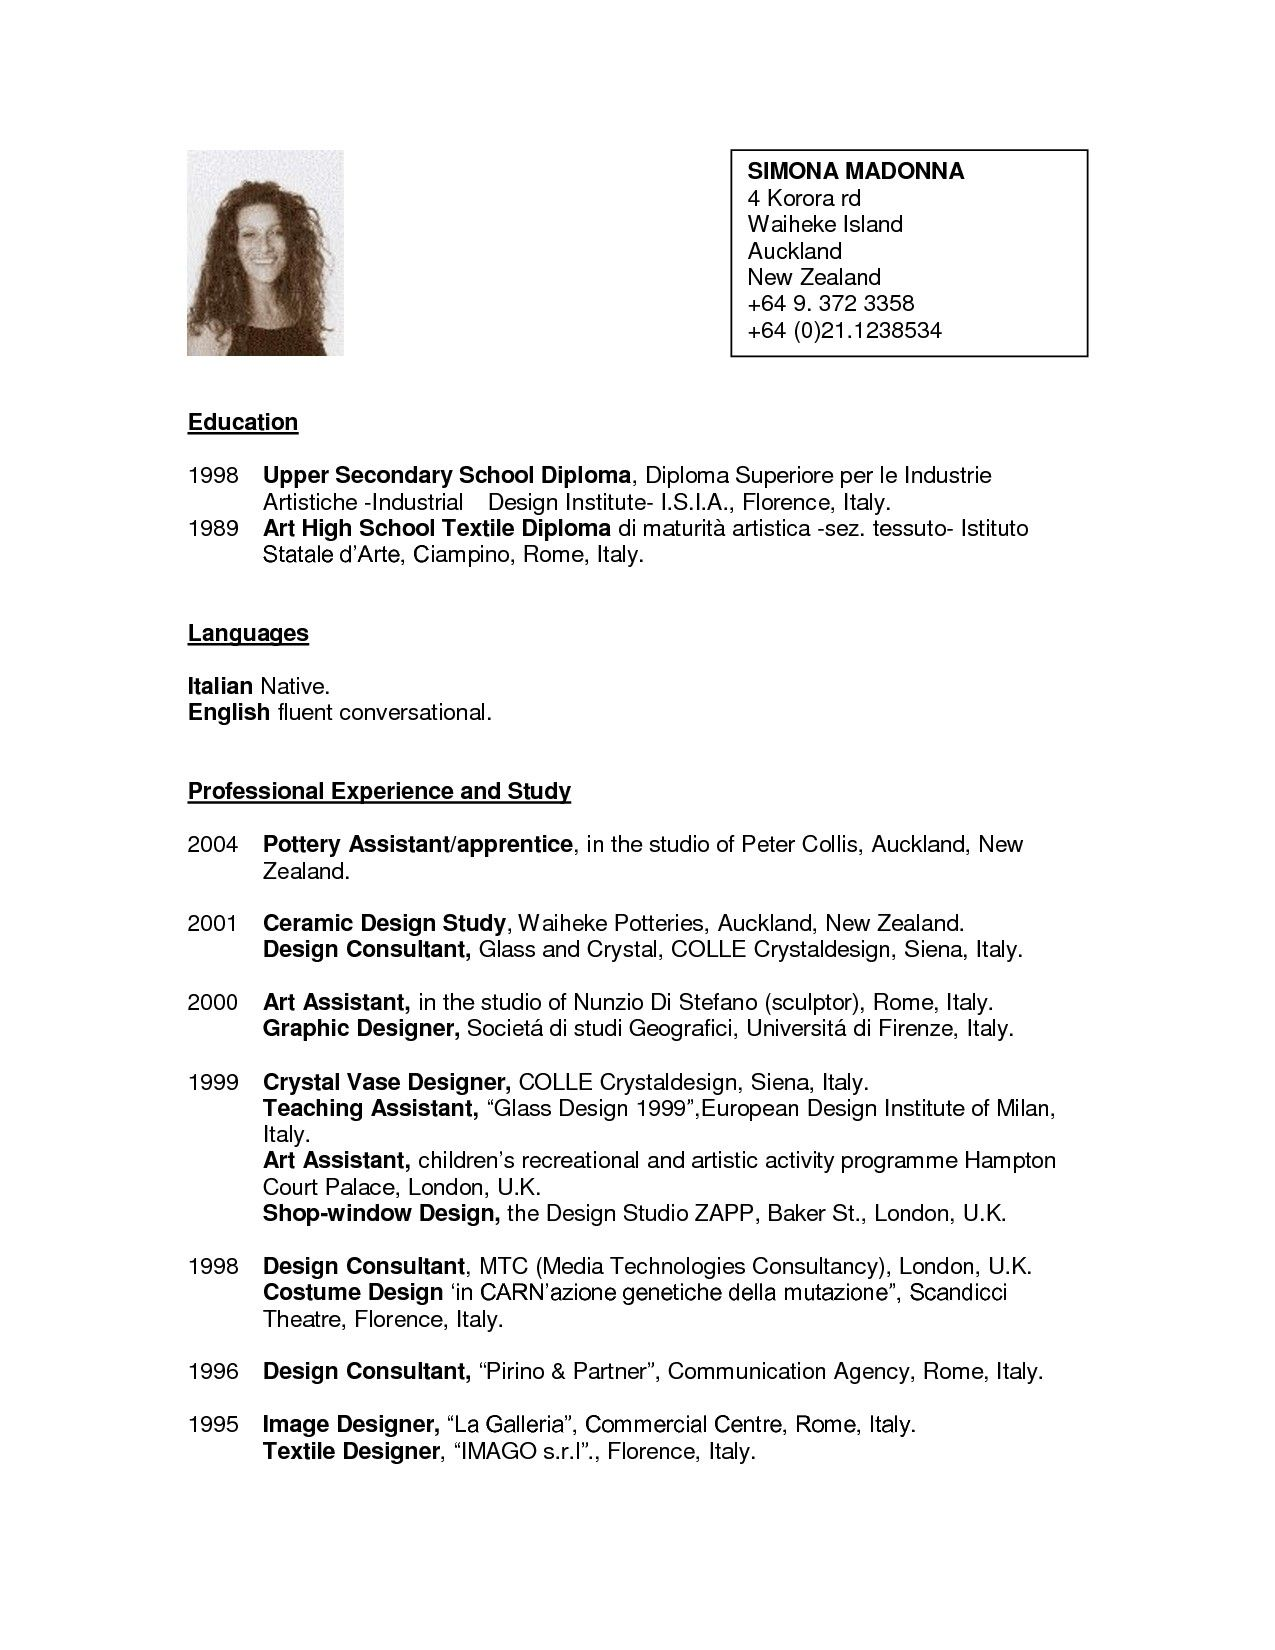 Curriculum Vitae Template New Zealand Free Resume Template Seek